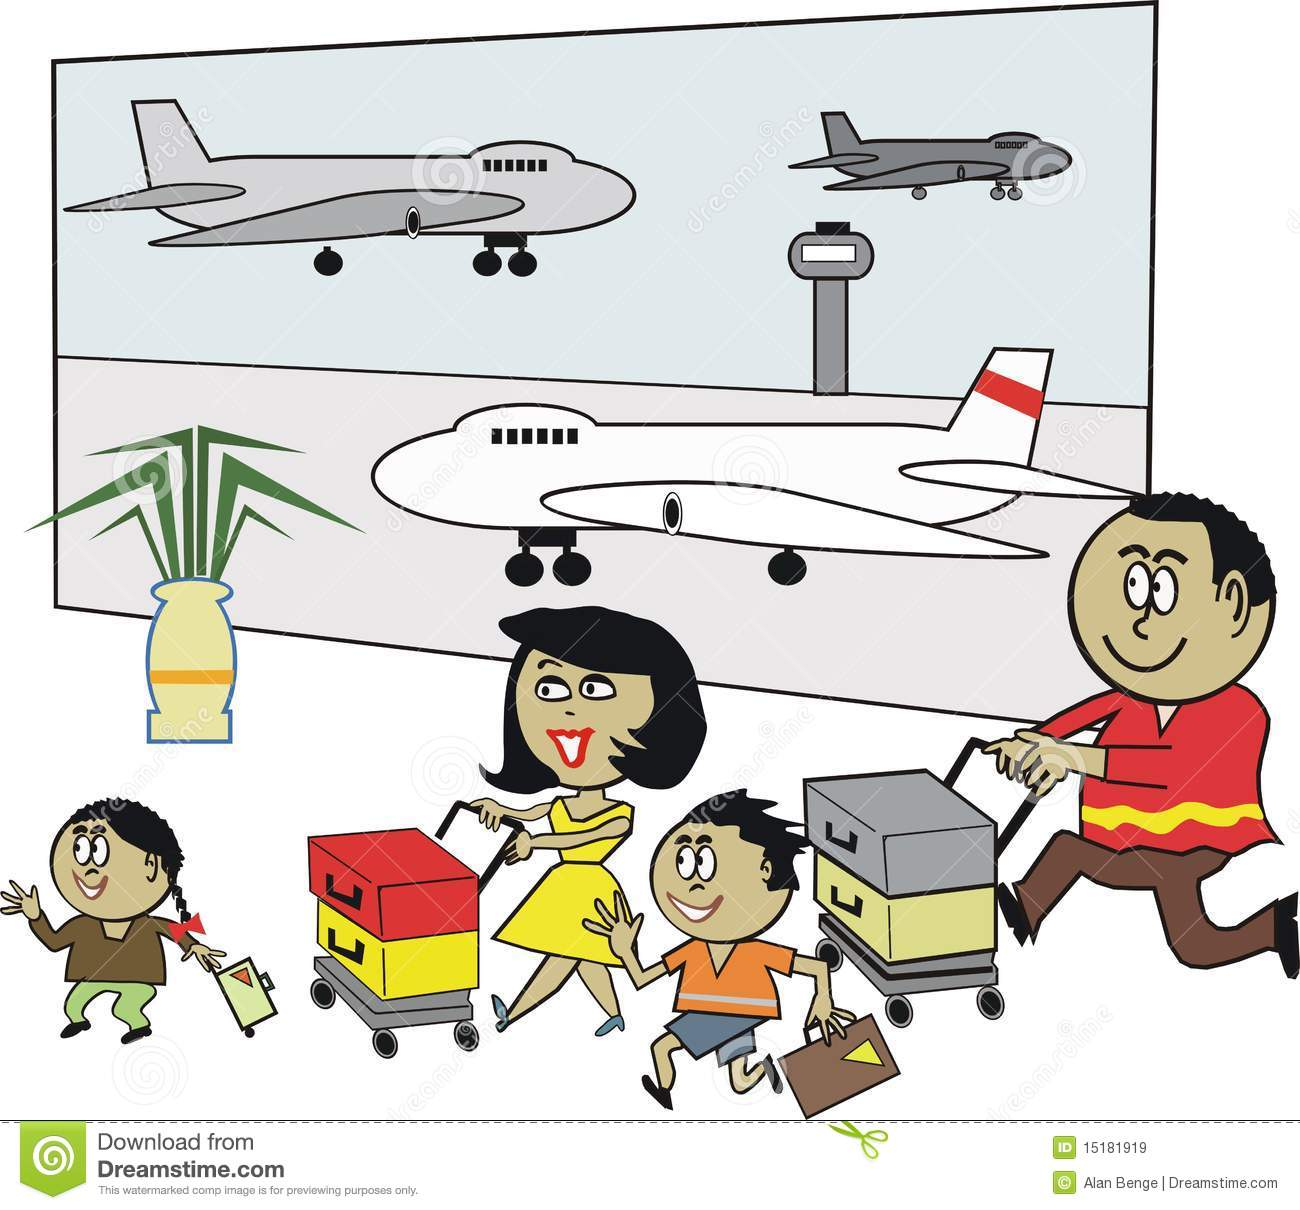 14 Airport Fueling Areal Cartoon Icon Images